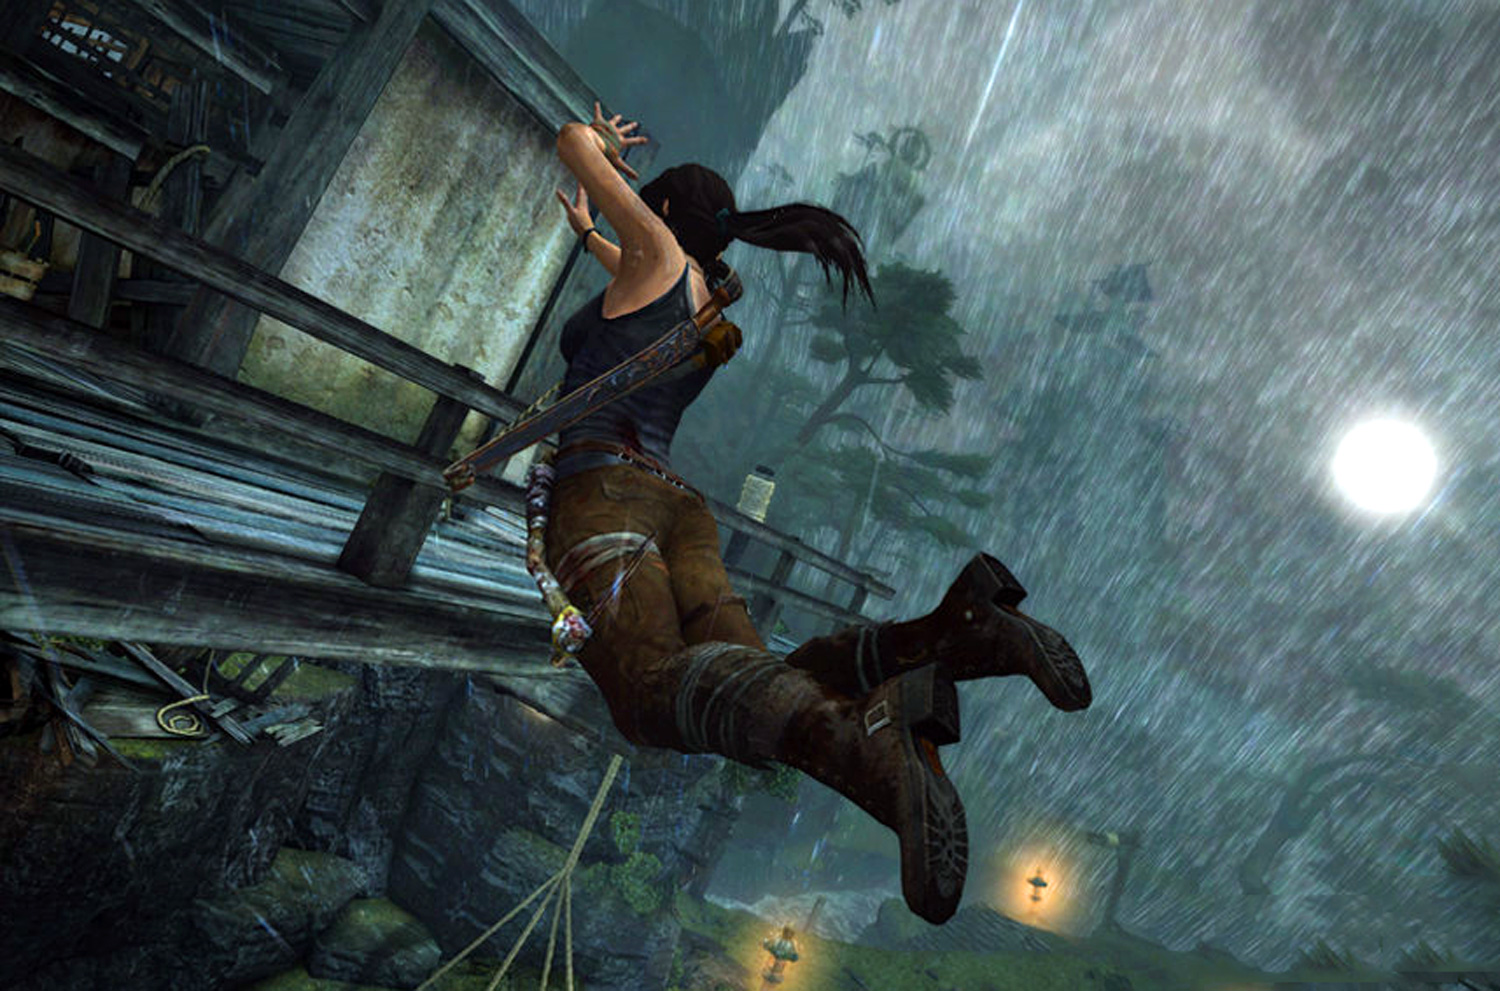 Tomb Raider 2013 (Reg Free / GLOBAL / ROW)